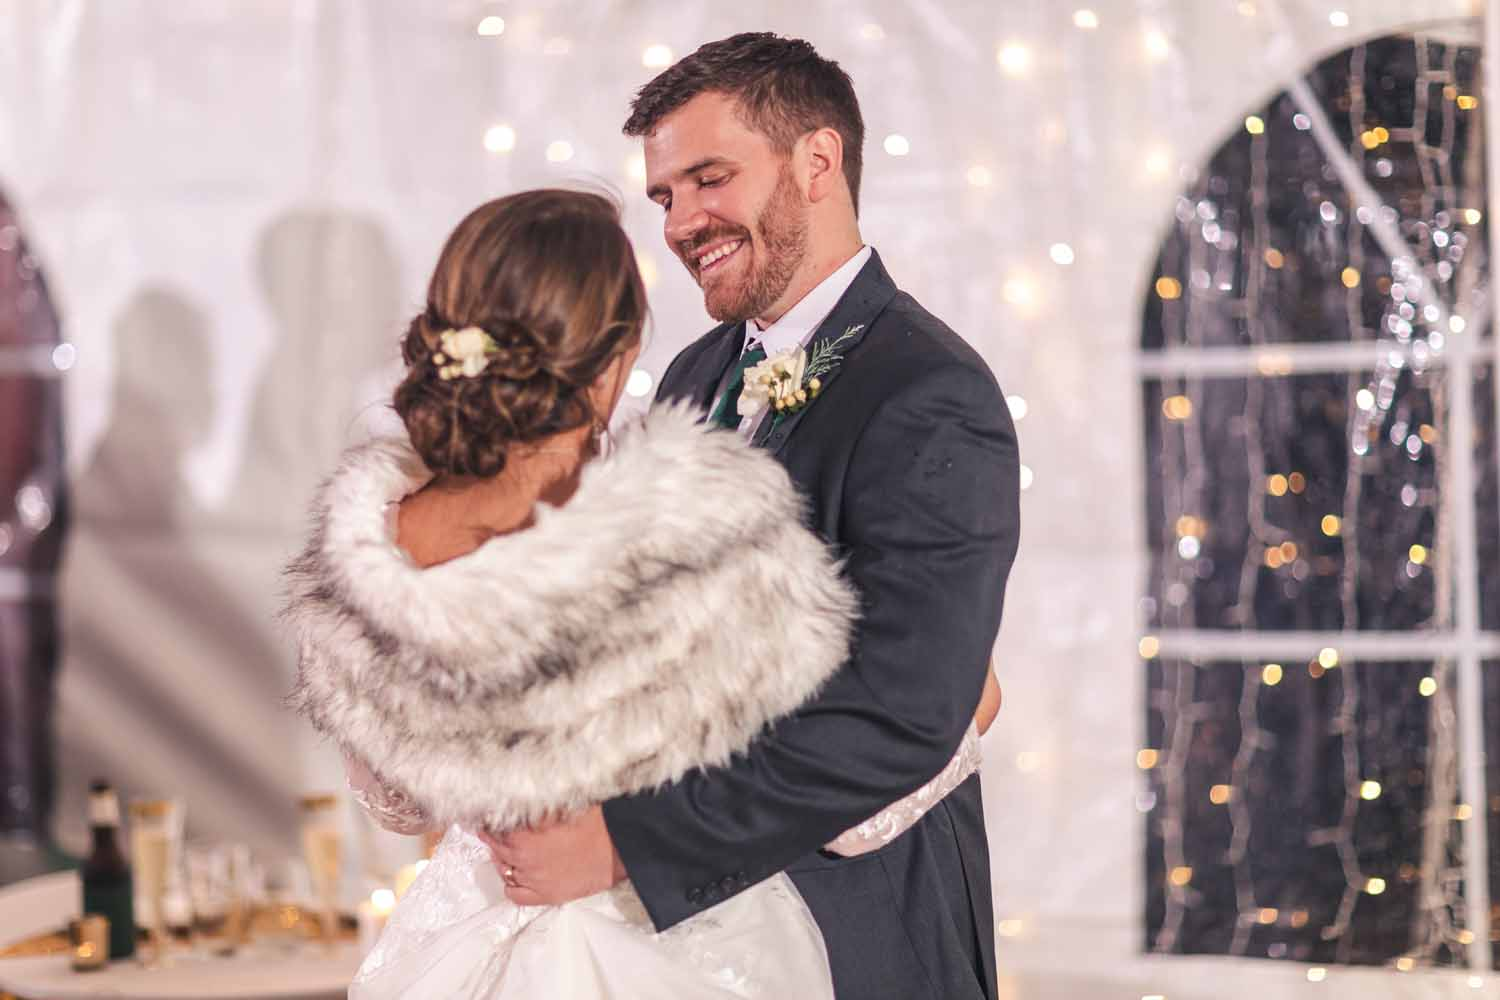 Groom looking into brides eyes while dancing at reception